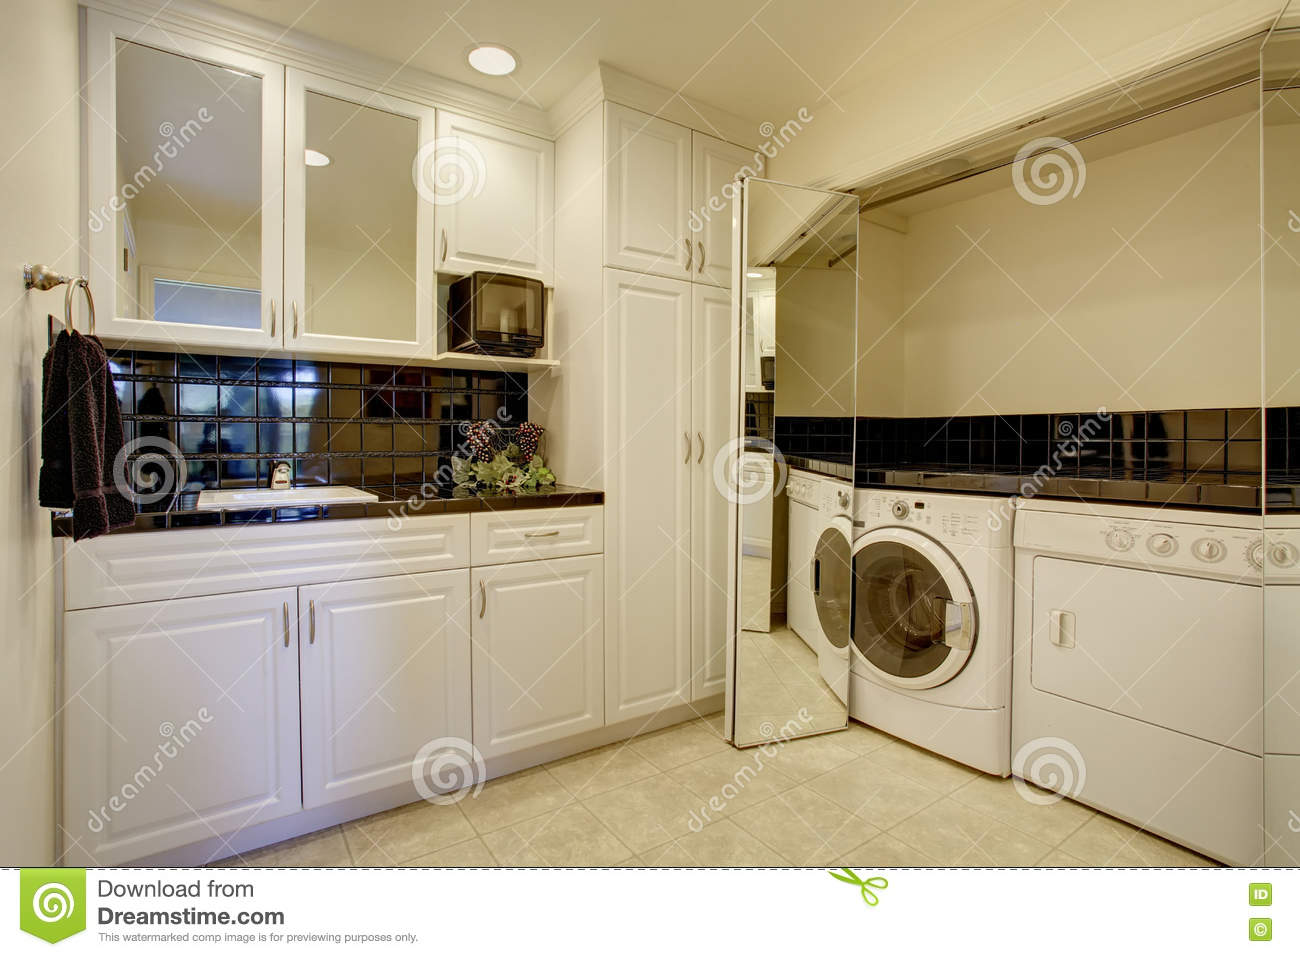 Small kitchen room with built in laundry area stock photo for Small built in kitchen